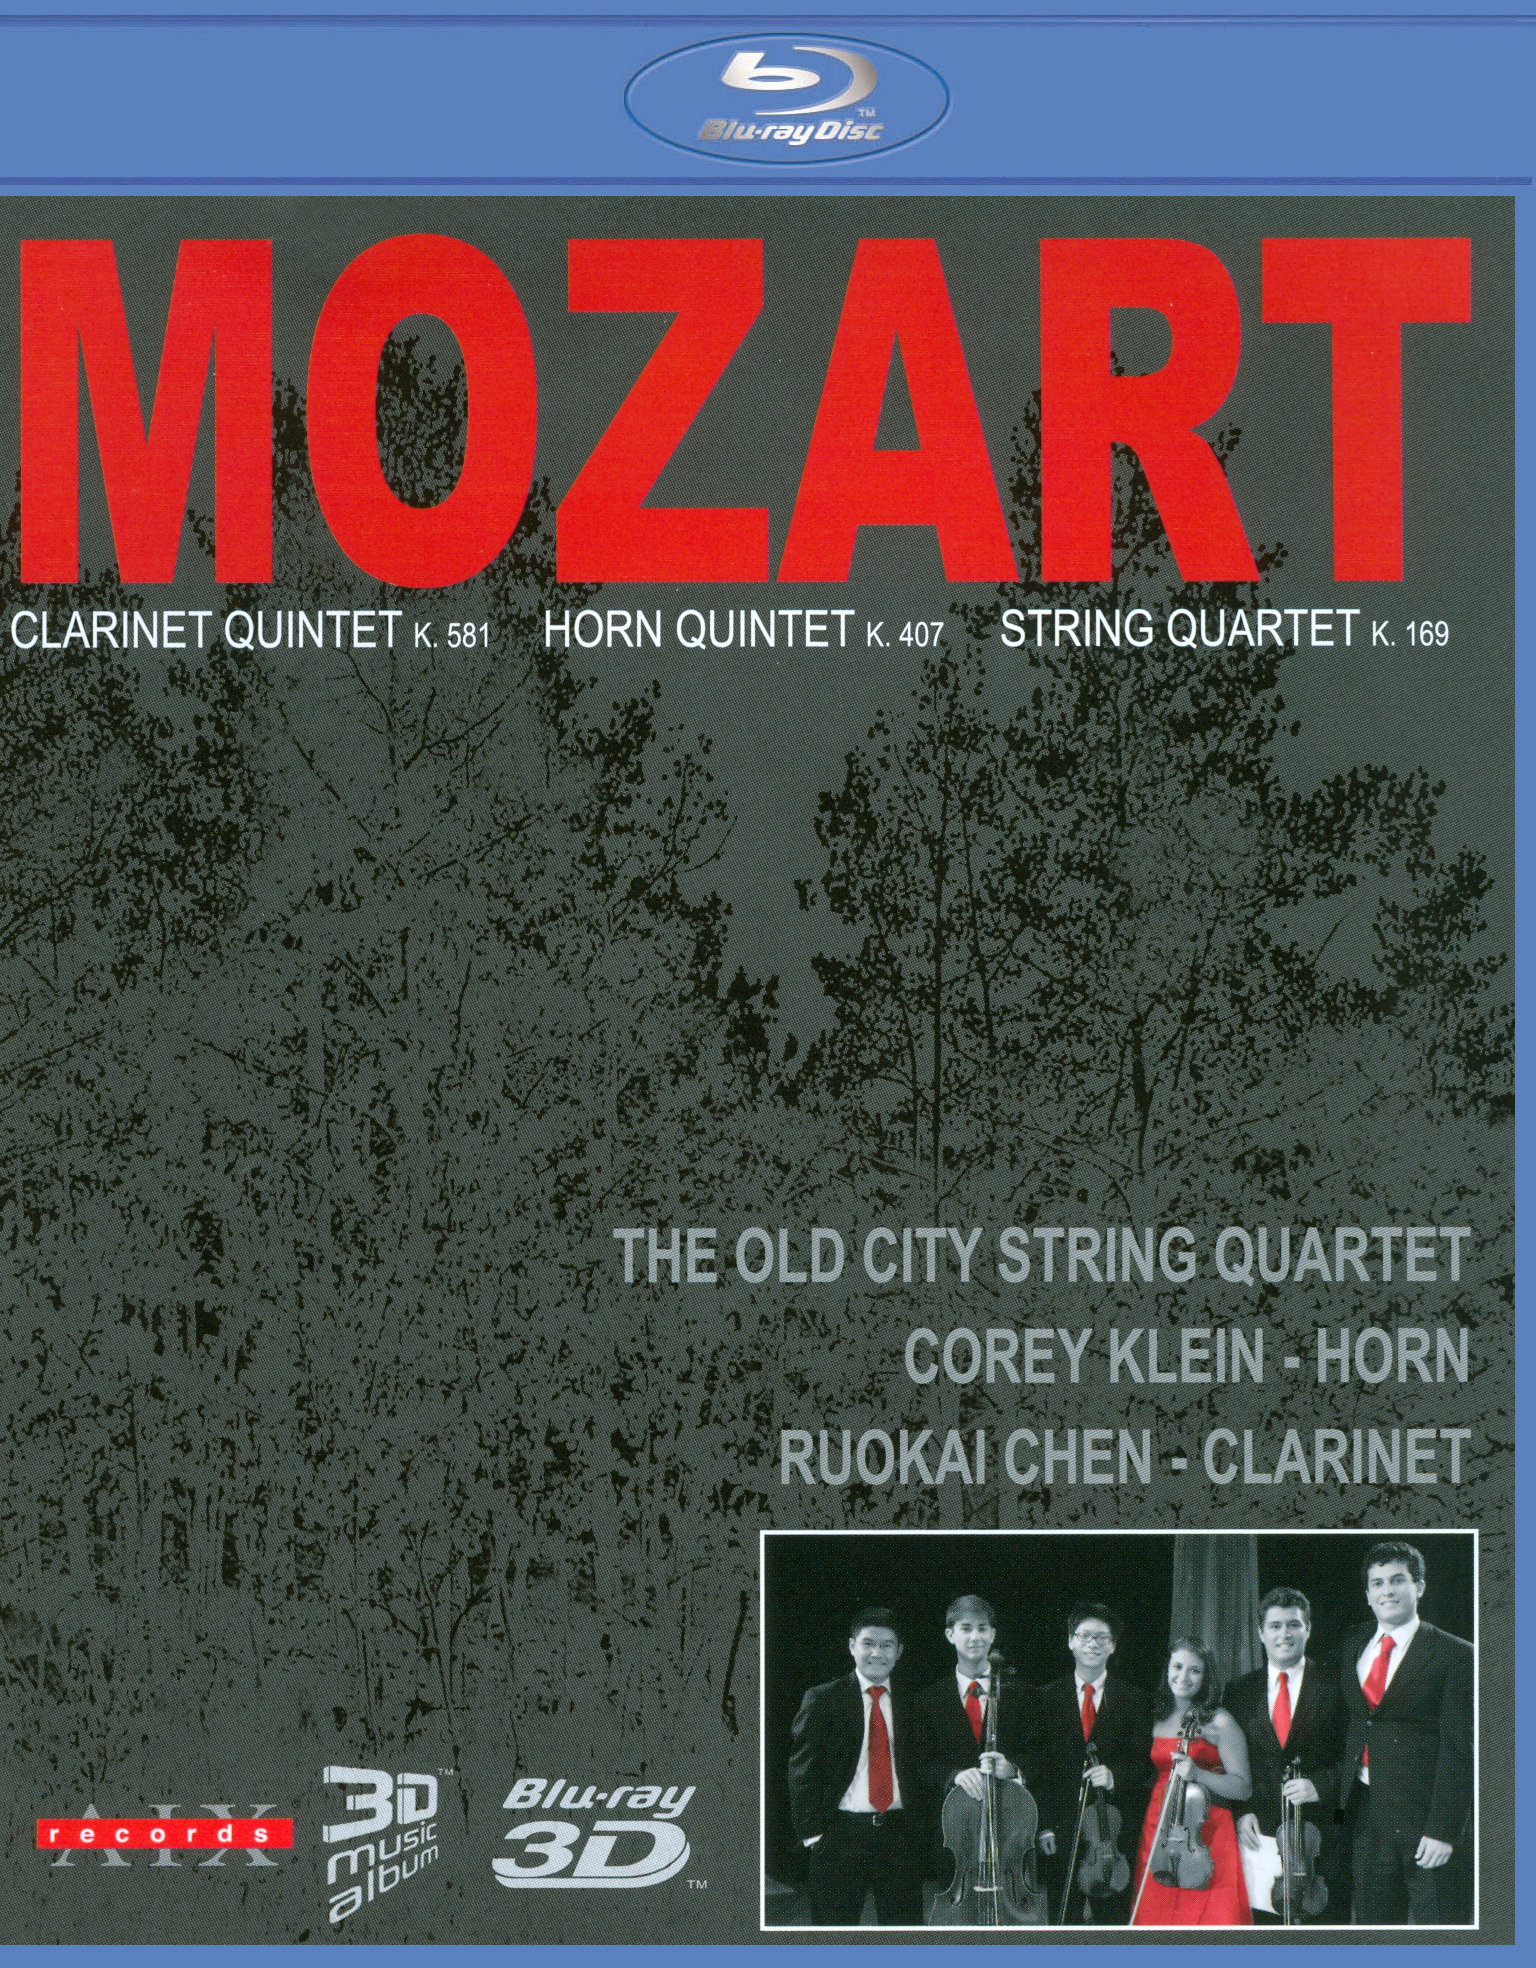 The Old City String Quartet: Mozart - Clarinet Quartet K. 581/Horn Quartet K. 407/String Quartet K. 1